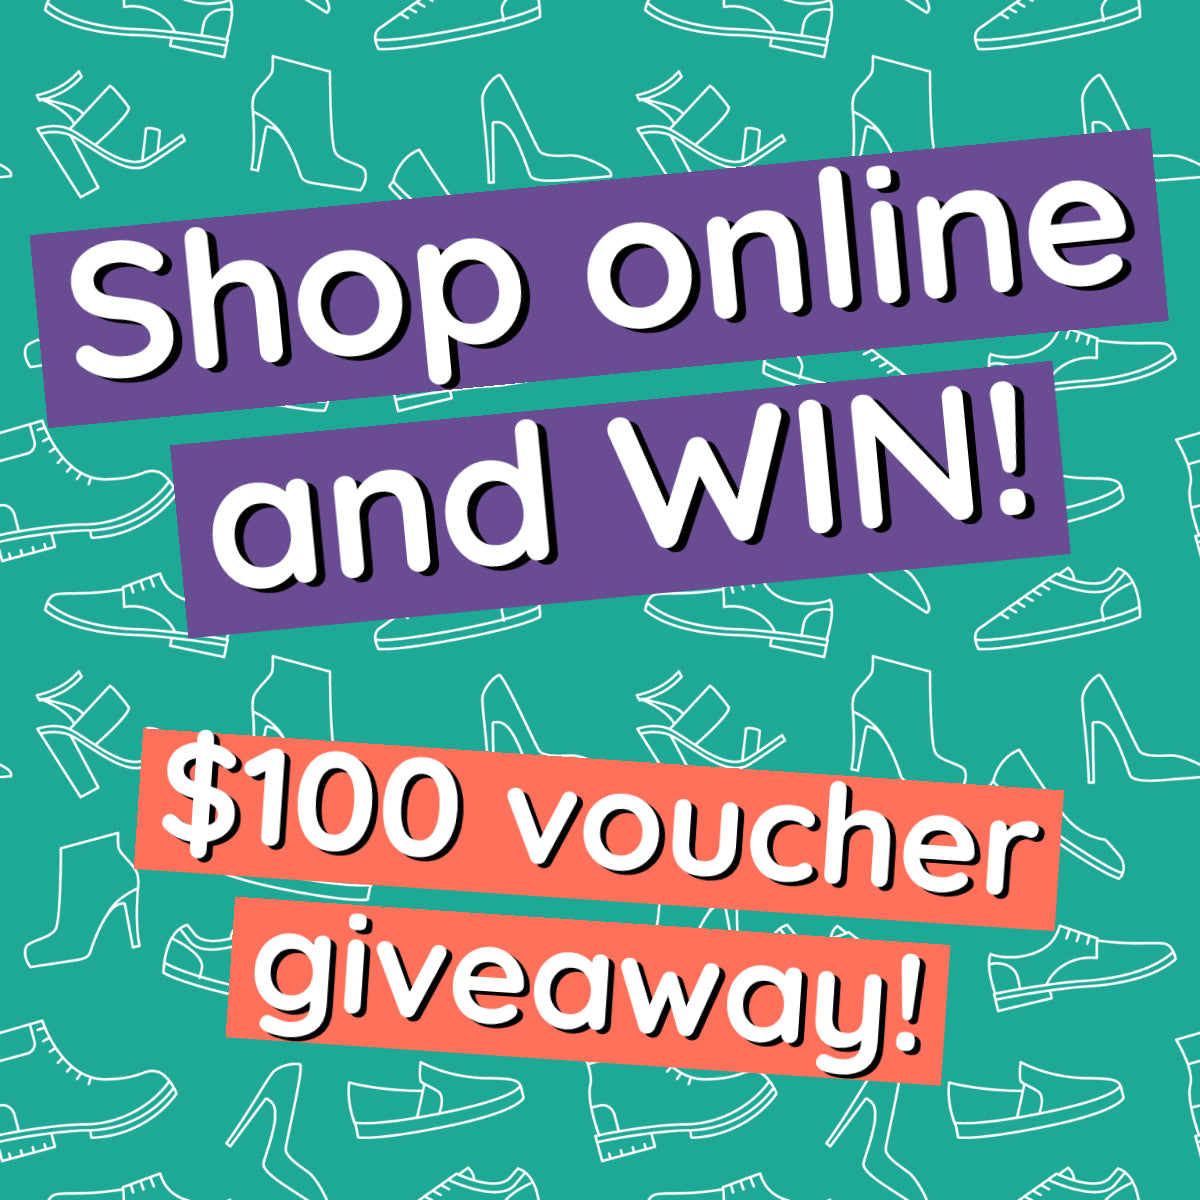 Shop online and win! $100 voucher giveaway